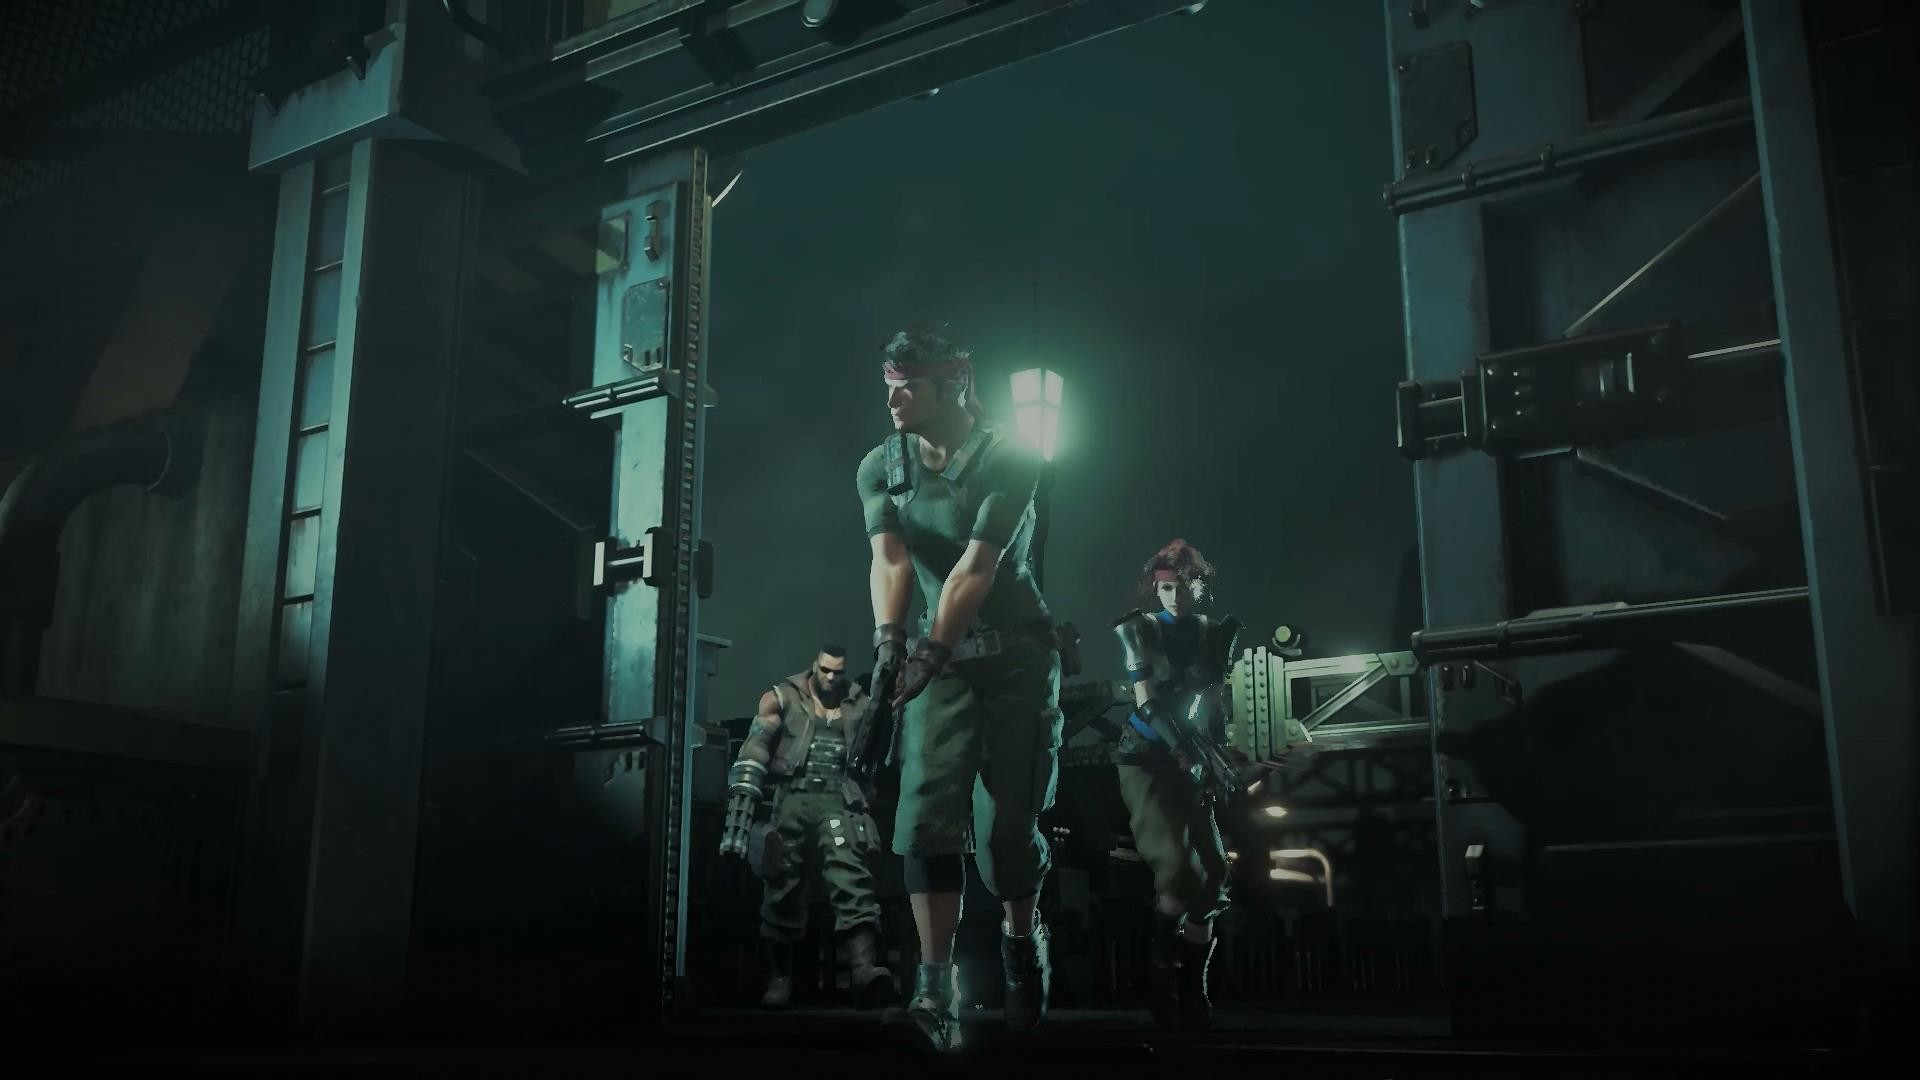 Final Fantasy VII Remake will explore characters like Biggs, Wedge and  Jessie further – Nova Crystallis